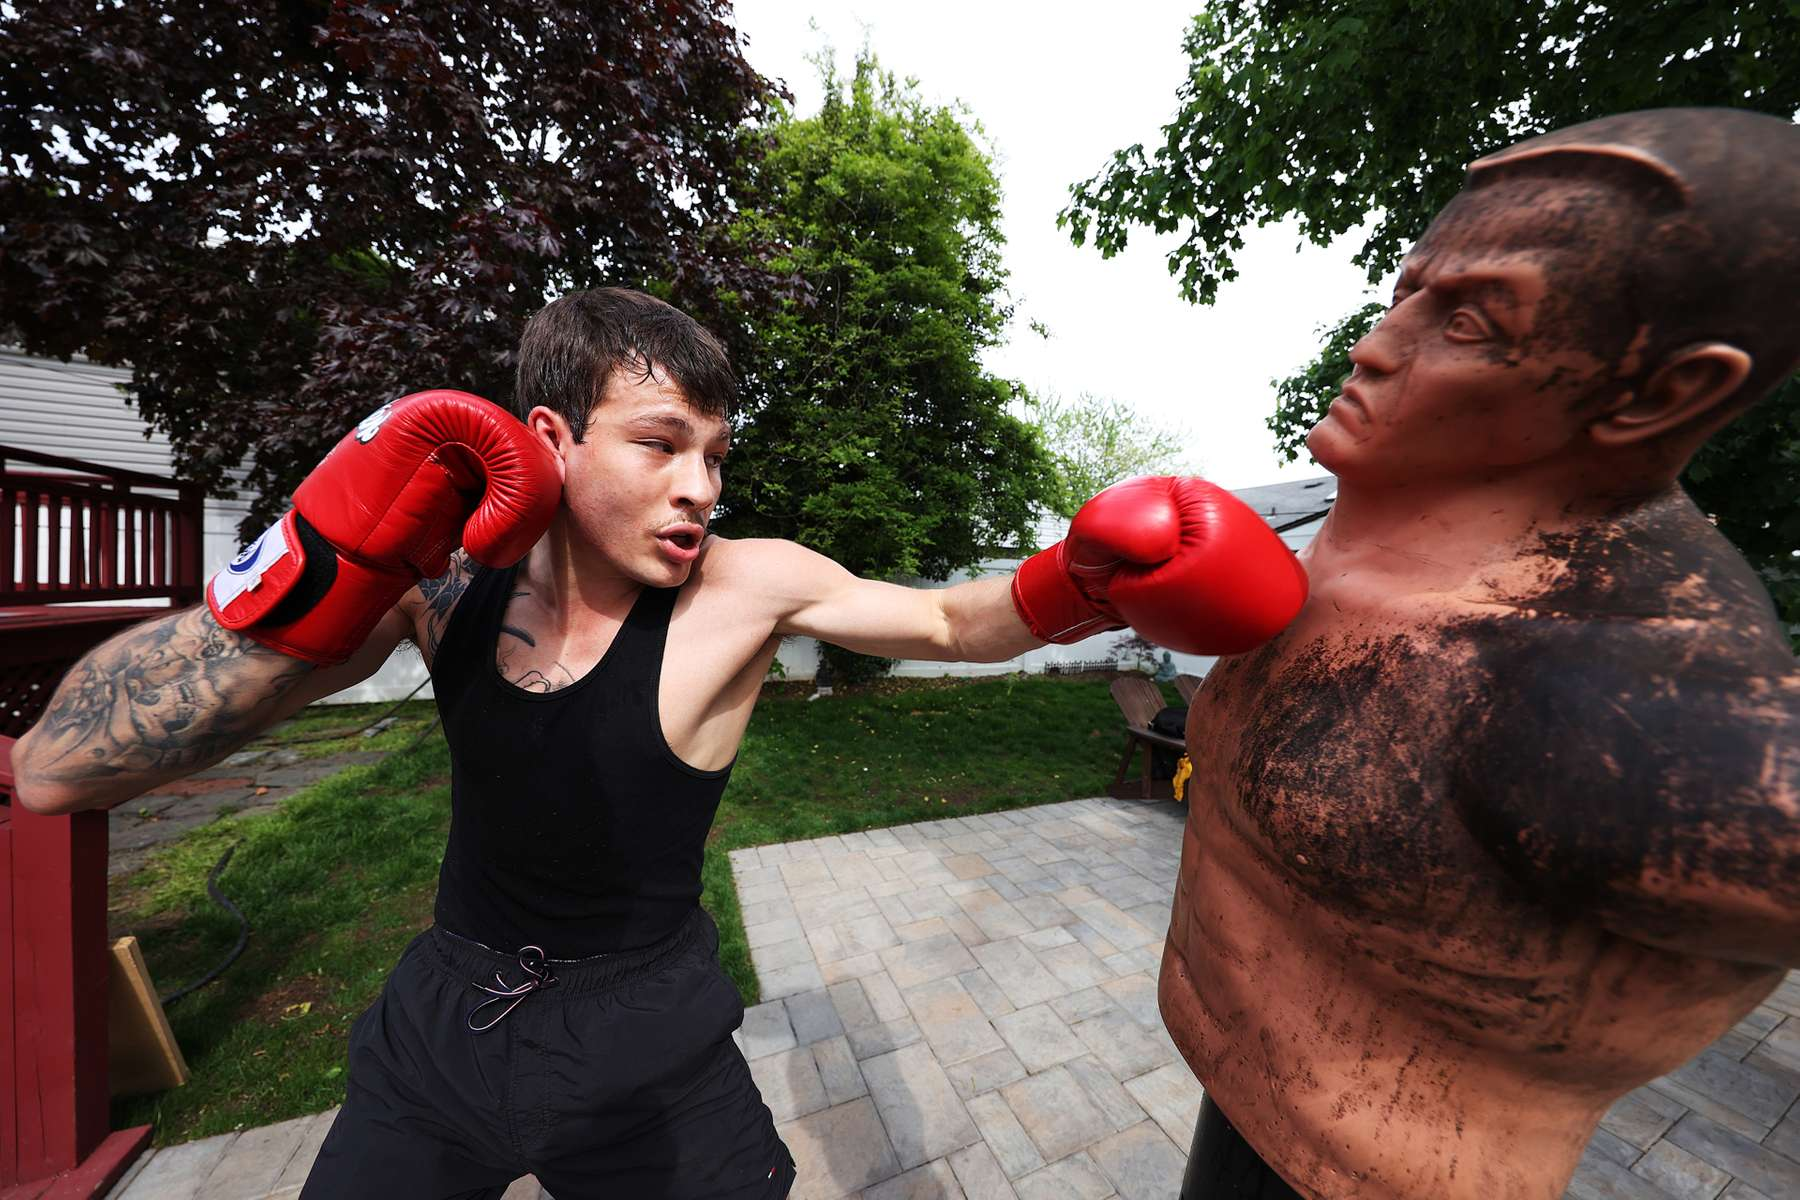 Zach Blumberg punches a boxing dummy he has named Bob in his backyard on May 18, 2020 in Oceanside, New York.  Zach is an Amateur boxer who fought in the New York City Golden Gloves. He was training to compete in this year's Golden Gloves tournament but it has been cancelled due to the coronavirus pandemic.  The Gym he fights for is called the Freeport Boxing Club and has been closed by New York Governor Andrew Cuomo since March 16th due to the coronavirus COVID-19 pandemic.  Until the gyms are deemed safe to open he will continue to stay fit by training at home with the hope that he can box again later this year.